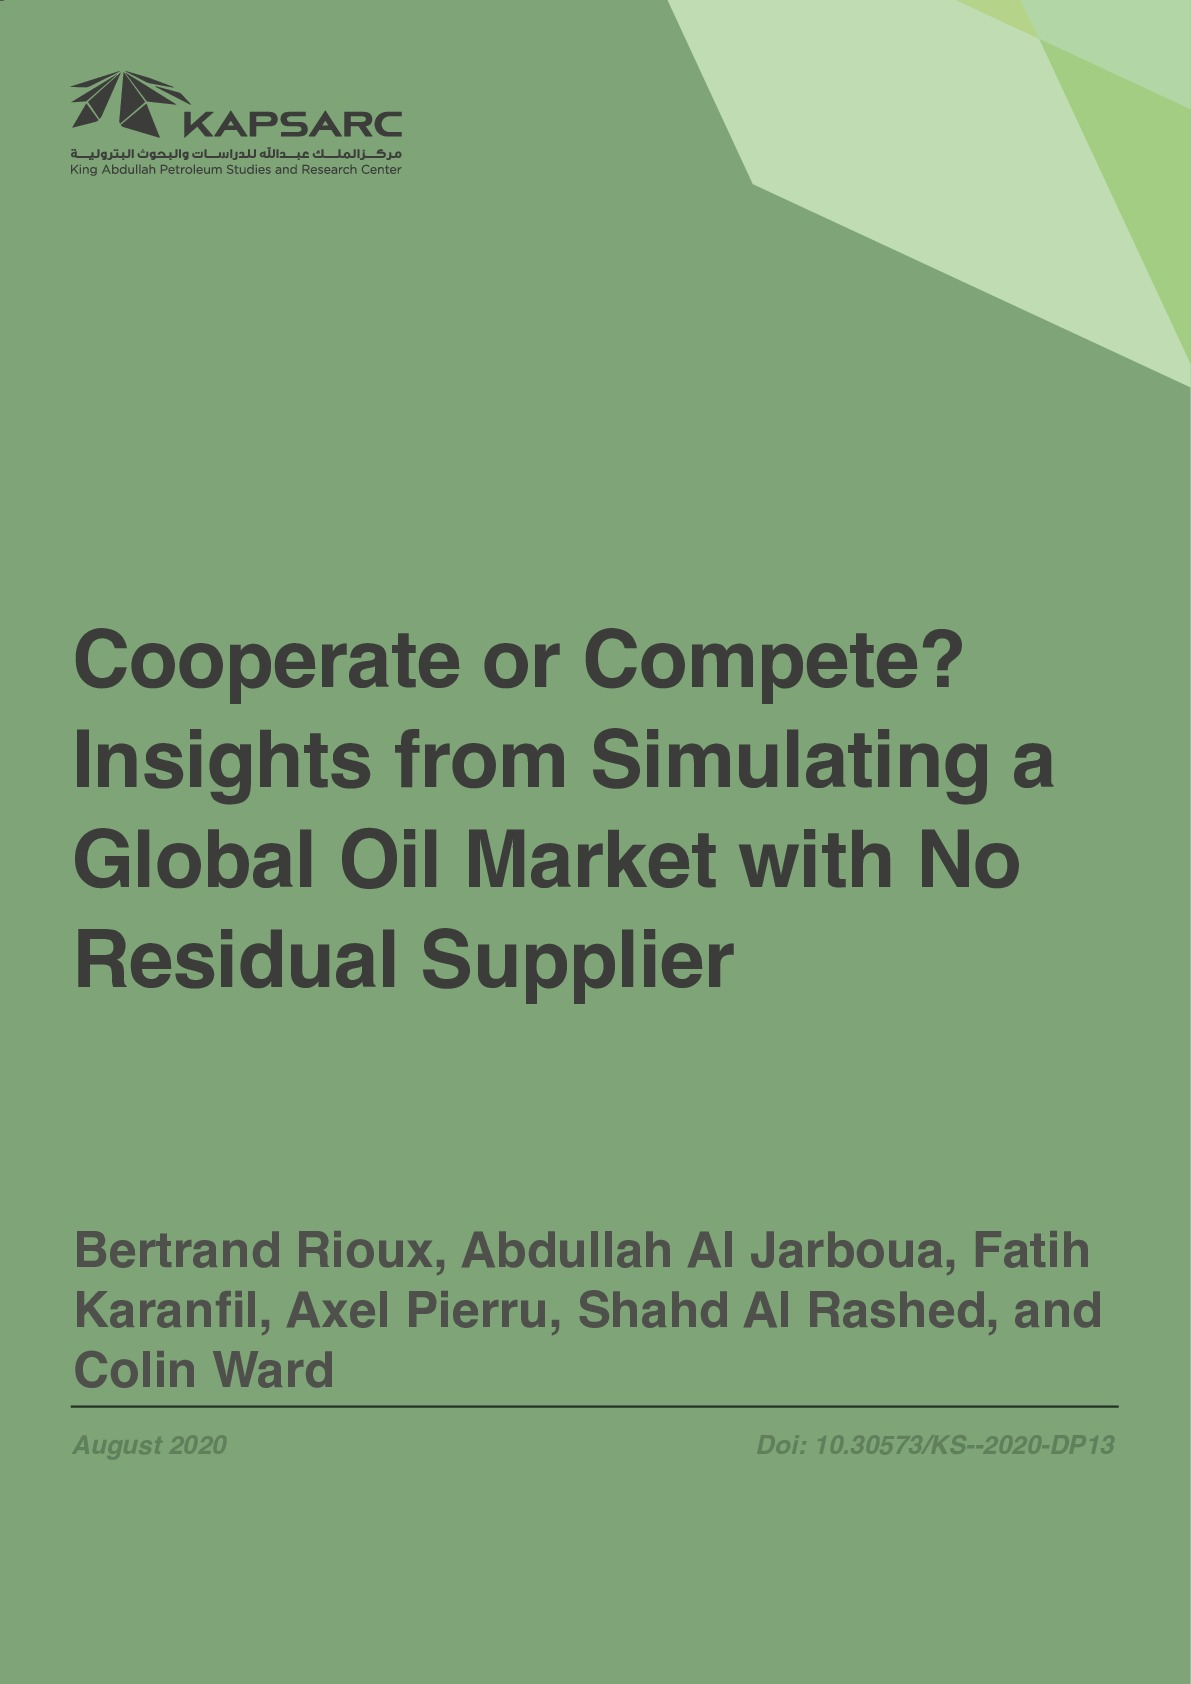 Cooperate or Compete? Insights from Simulating a Global Oil Market with No Residual Supplier